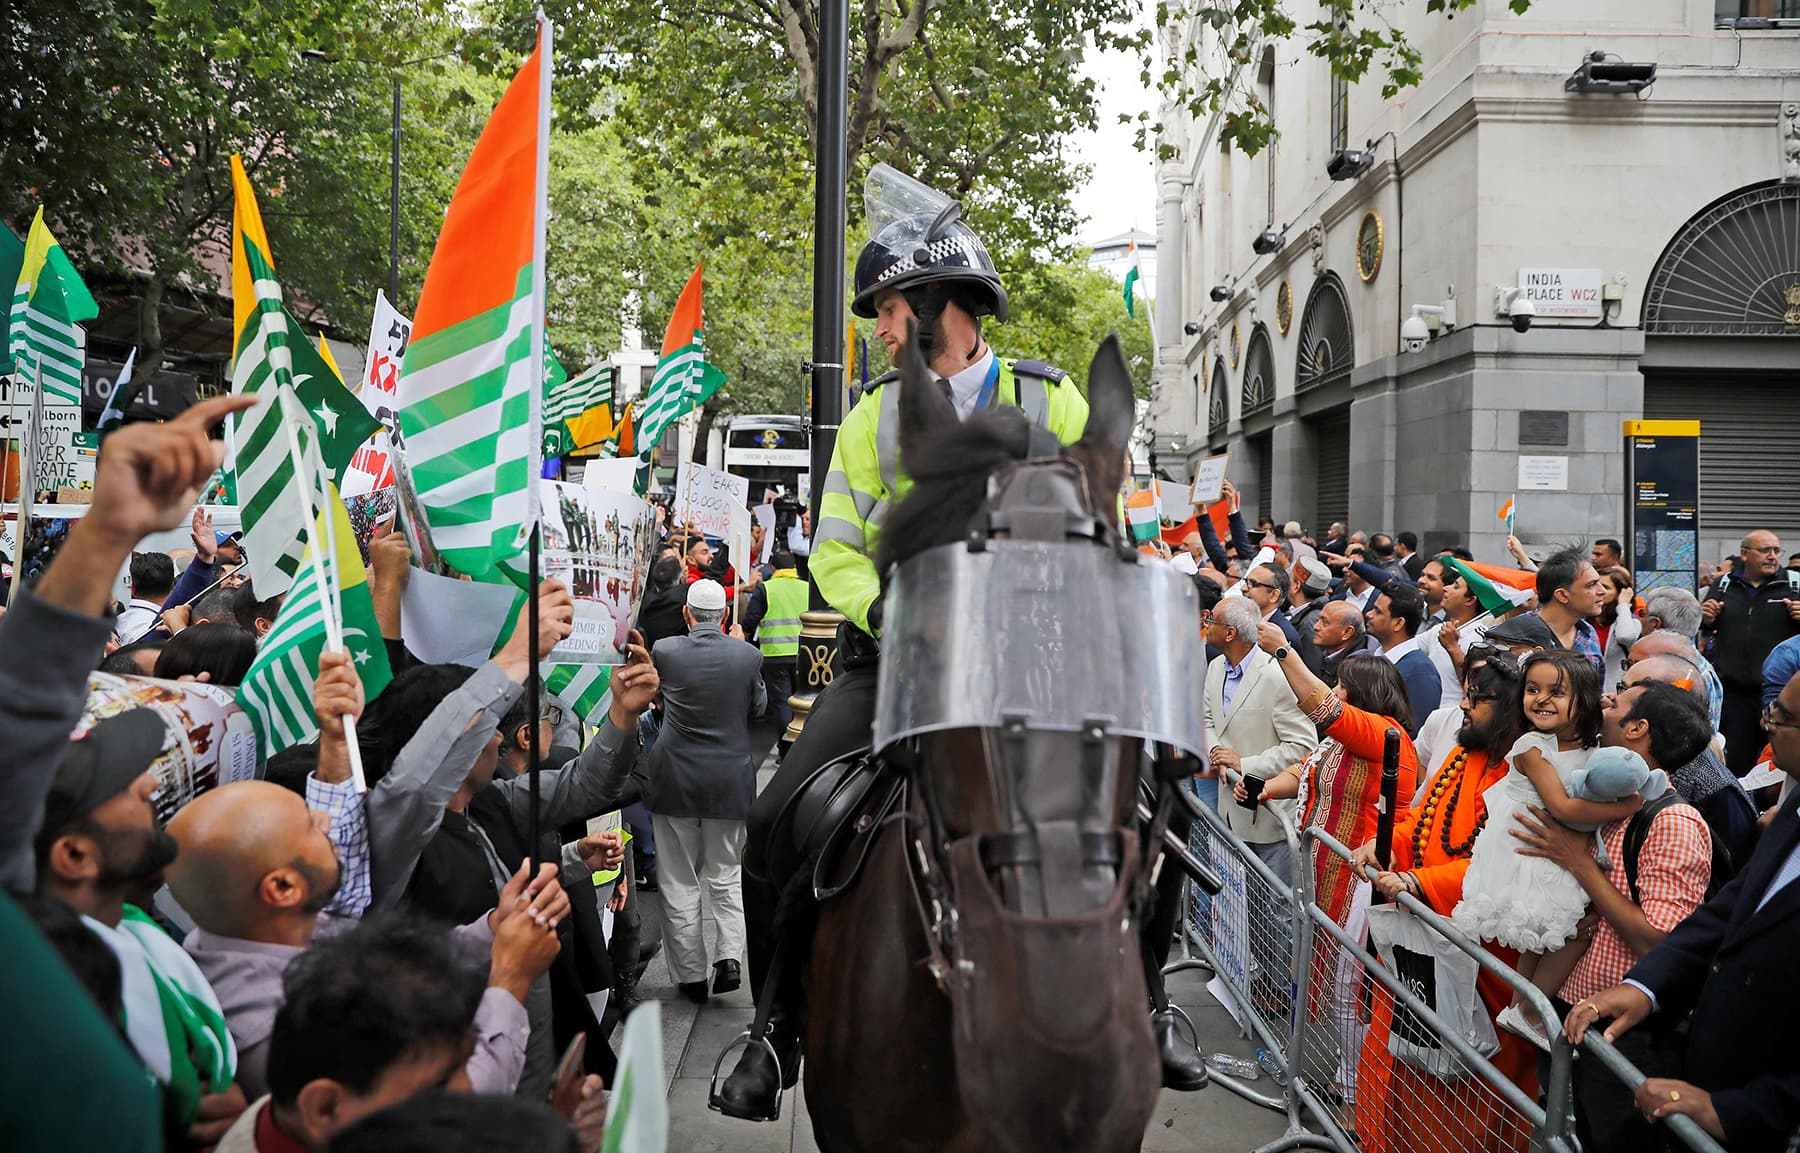 A British mounted police officer sits on his horse between pro-Pakistan (L) and pro-India (R) demonstrators as they protest outside of the Indian High Commision in central London on Thursday. — Reuters